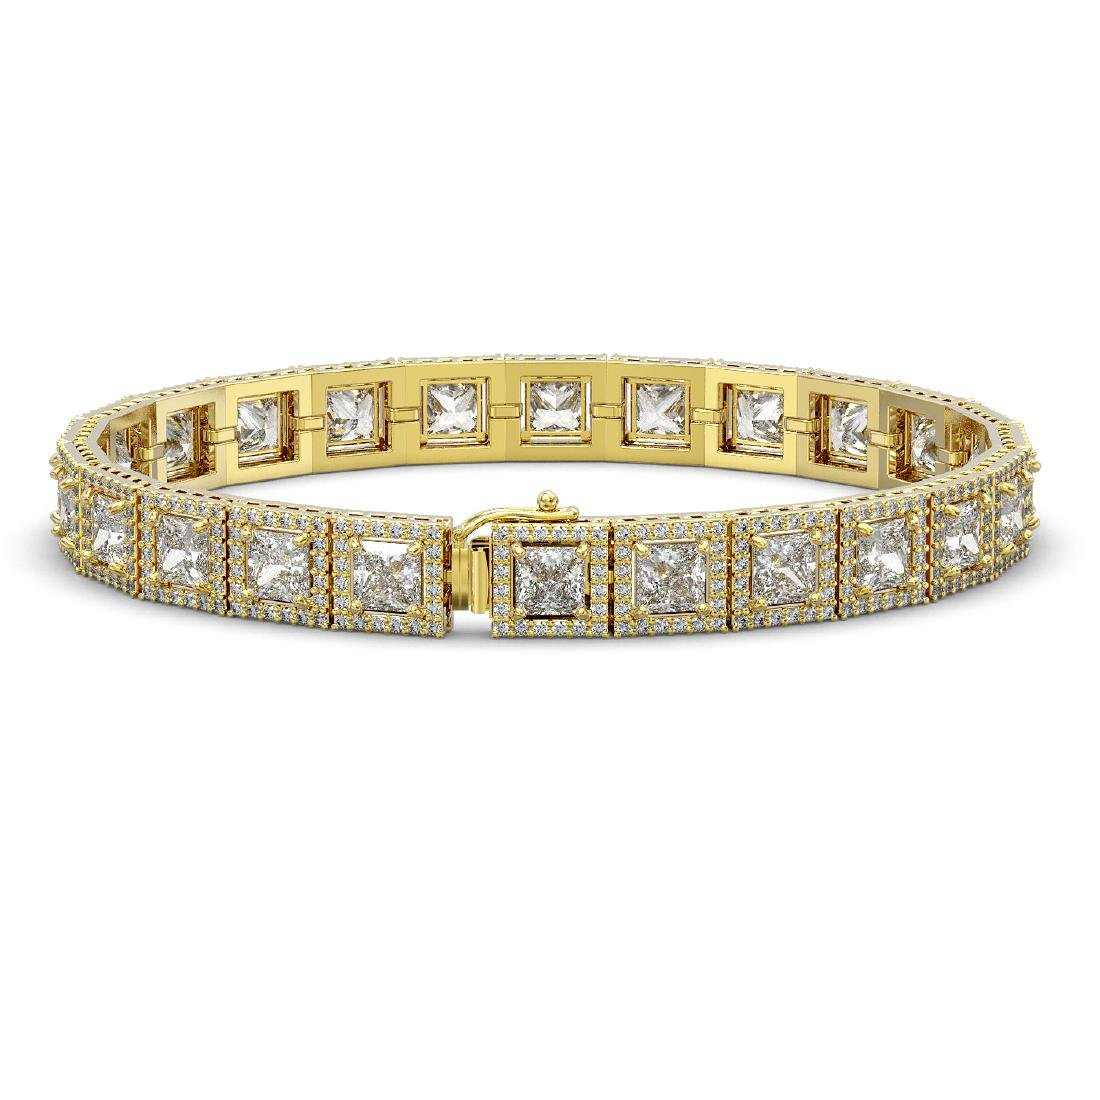 15.87 CTW Princess Diamond Designer Bracelet 18K Yellow - 2